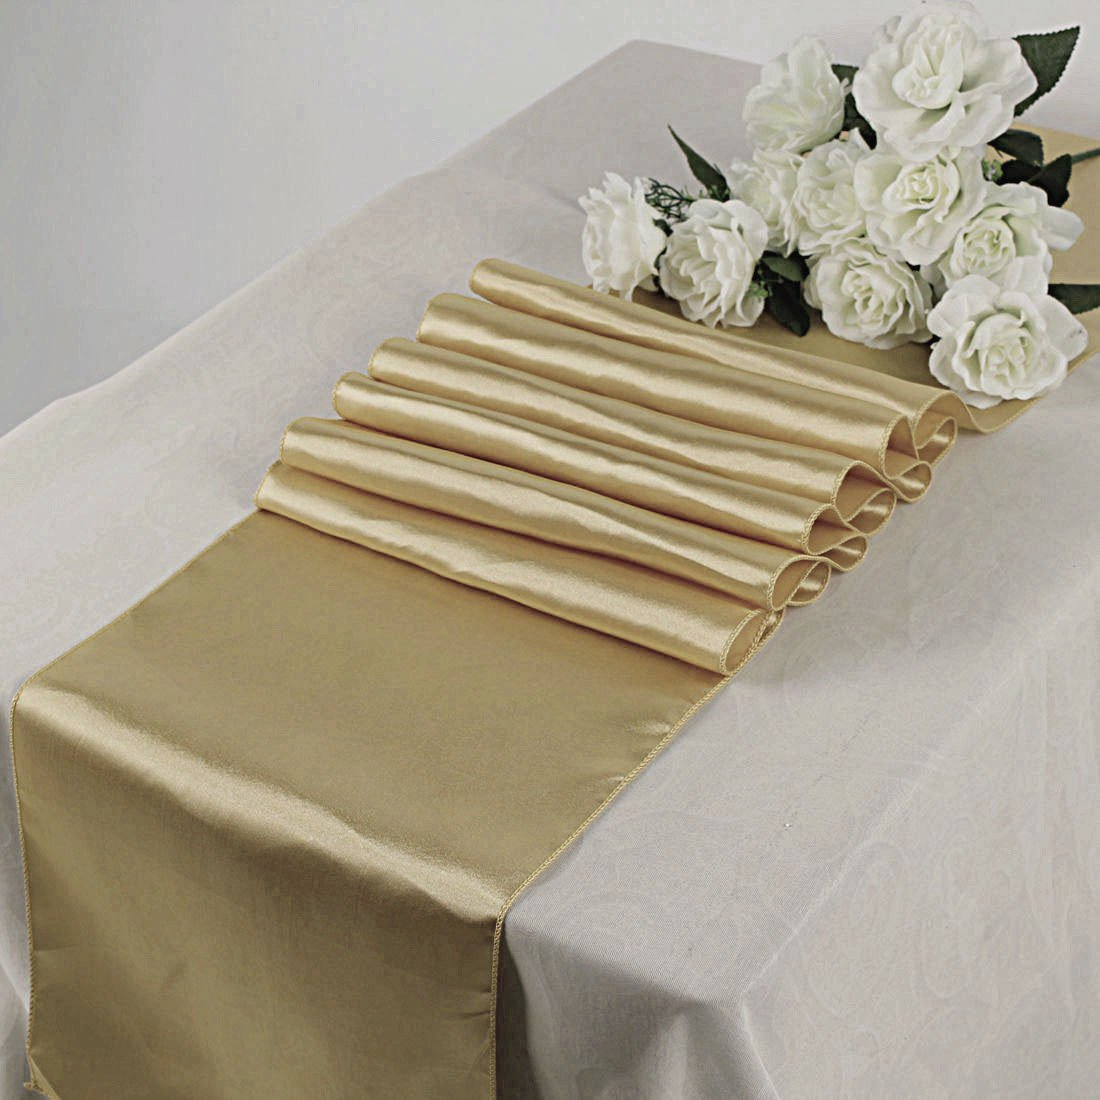 mds Pack Of 10 Wedding 12 x 108 inch Satin Table Runner For Wedding Banquet Decoration- champagne gold